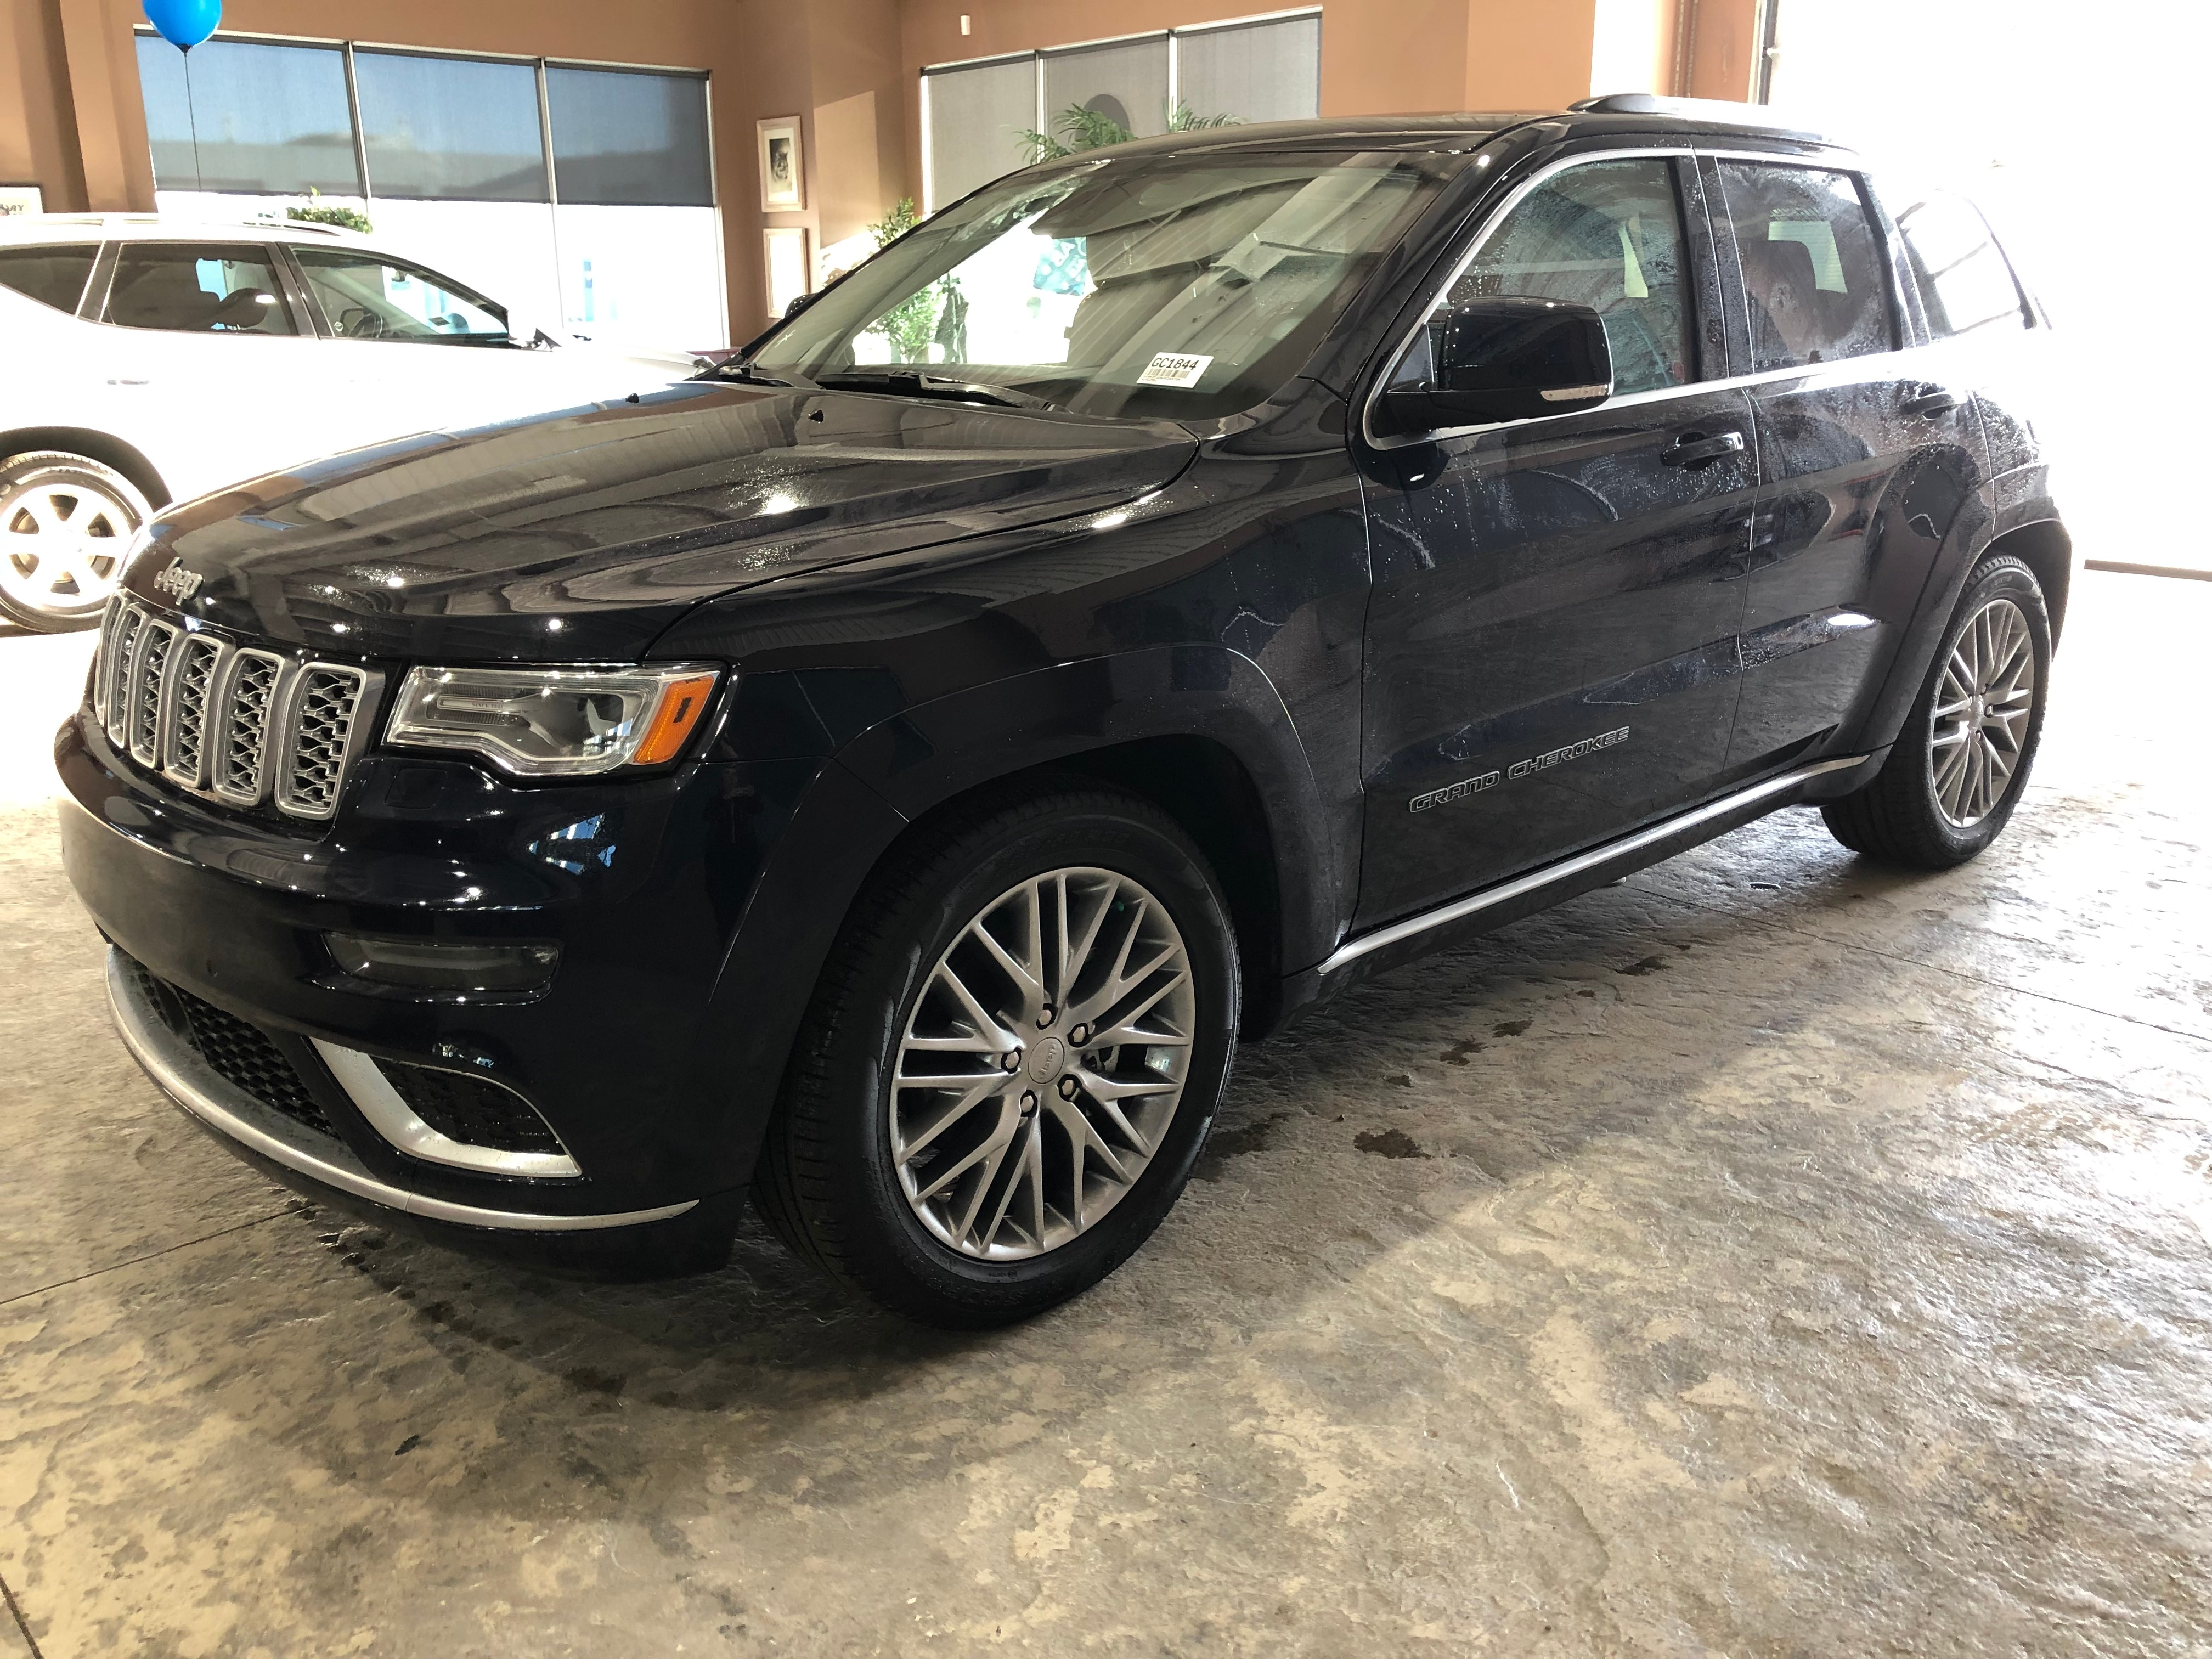 2018 Jeep Grand Cherokee Summit >> Used 2018 Jeep Grand Cherokee Summit Navigation For Sale Red Deer Ab Vin 1c4rjfjg9jc243728